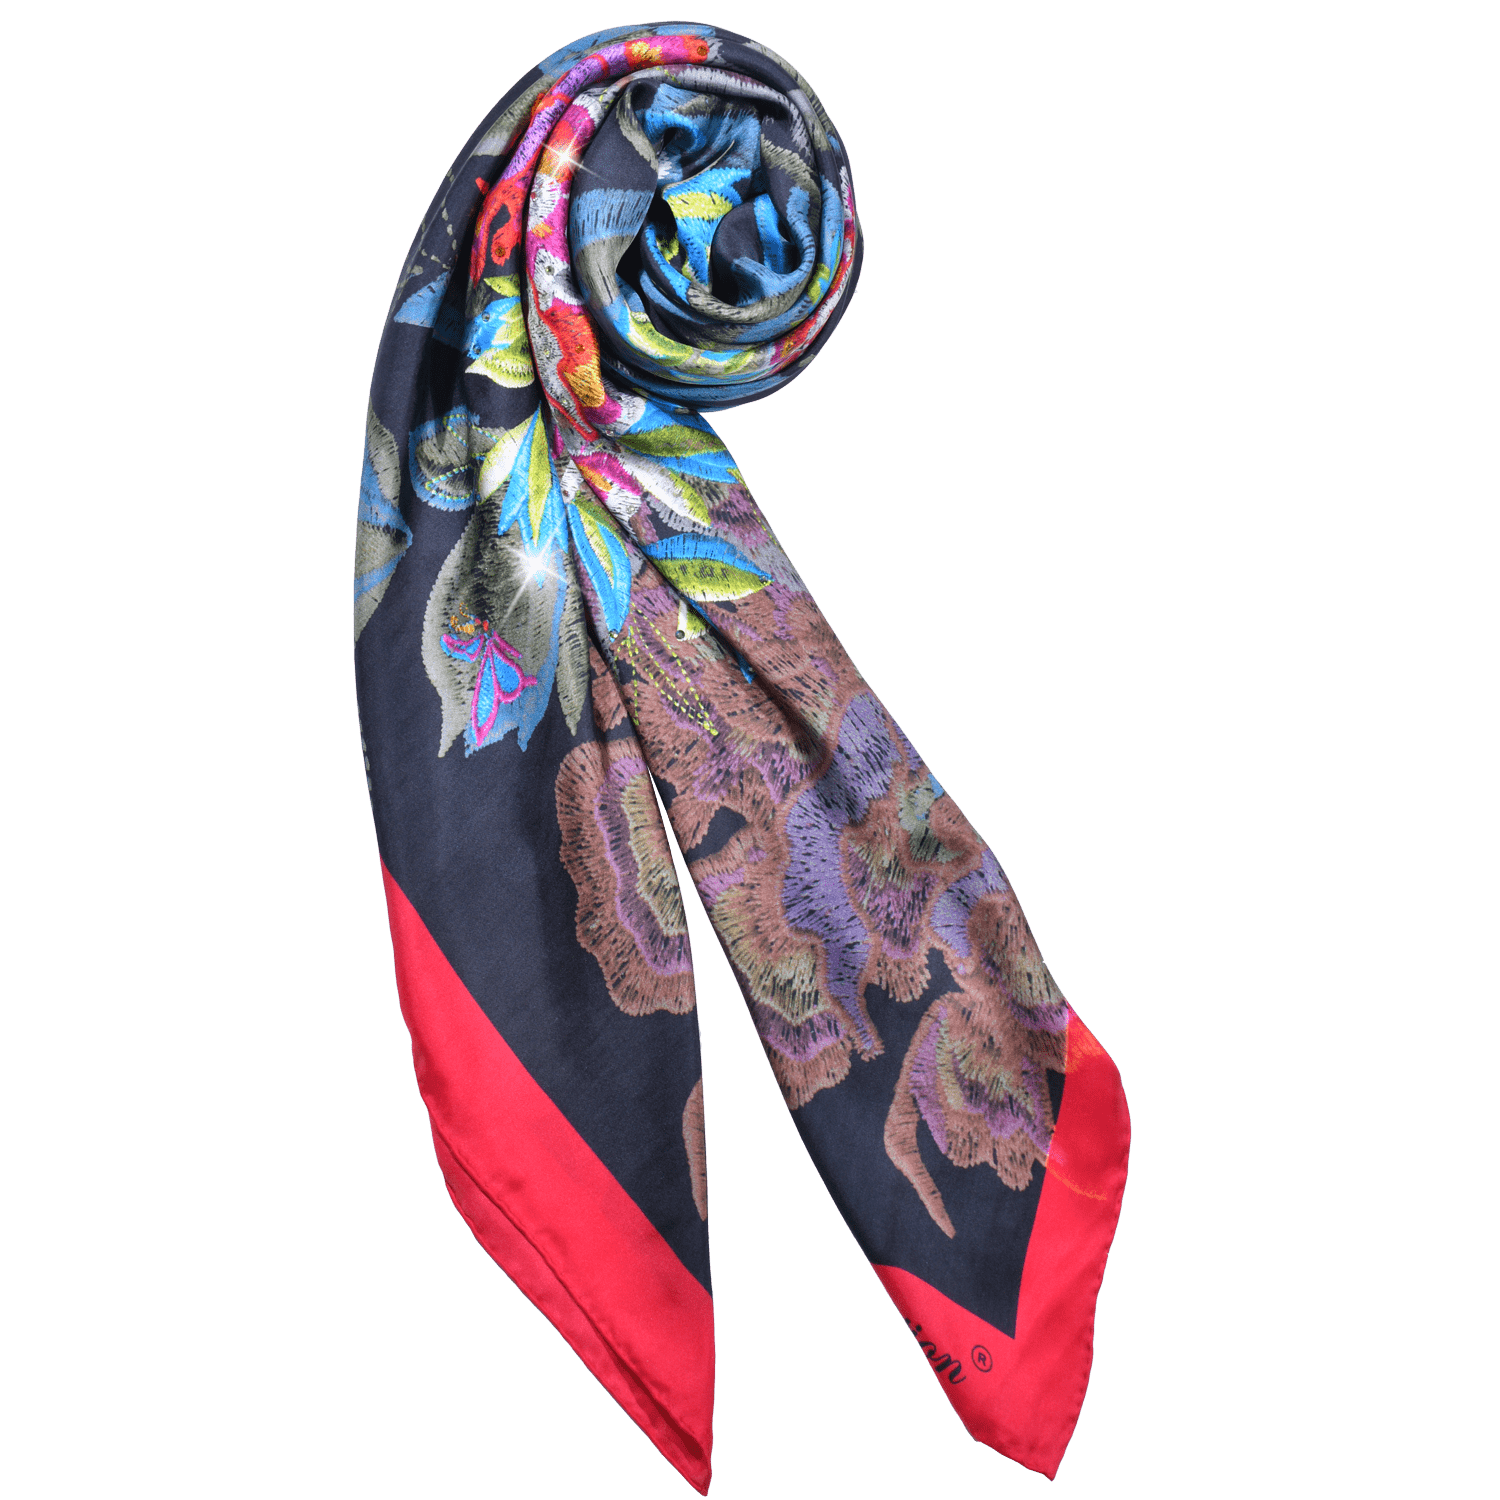 【PEONY】 100% Silk Scarf with Crystals - THE SPARKLE COLLECTION by GERMAN POOL